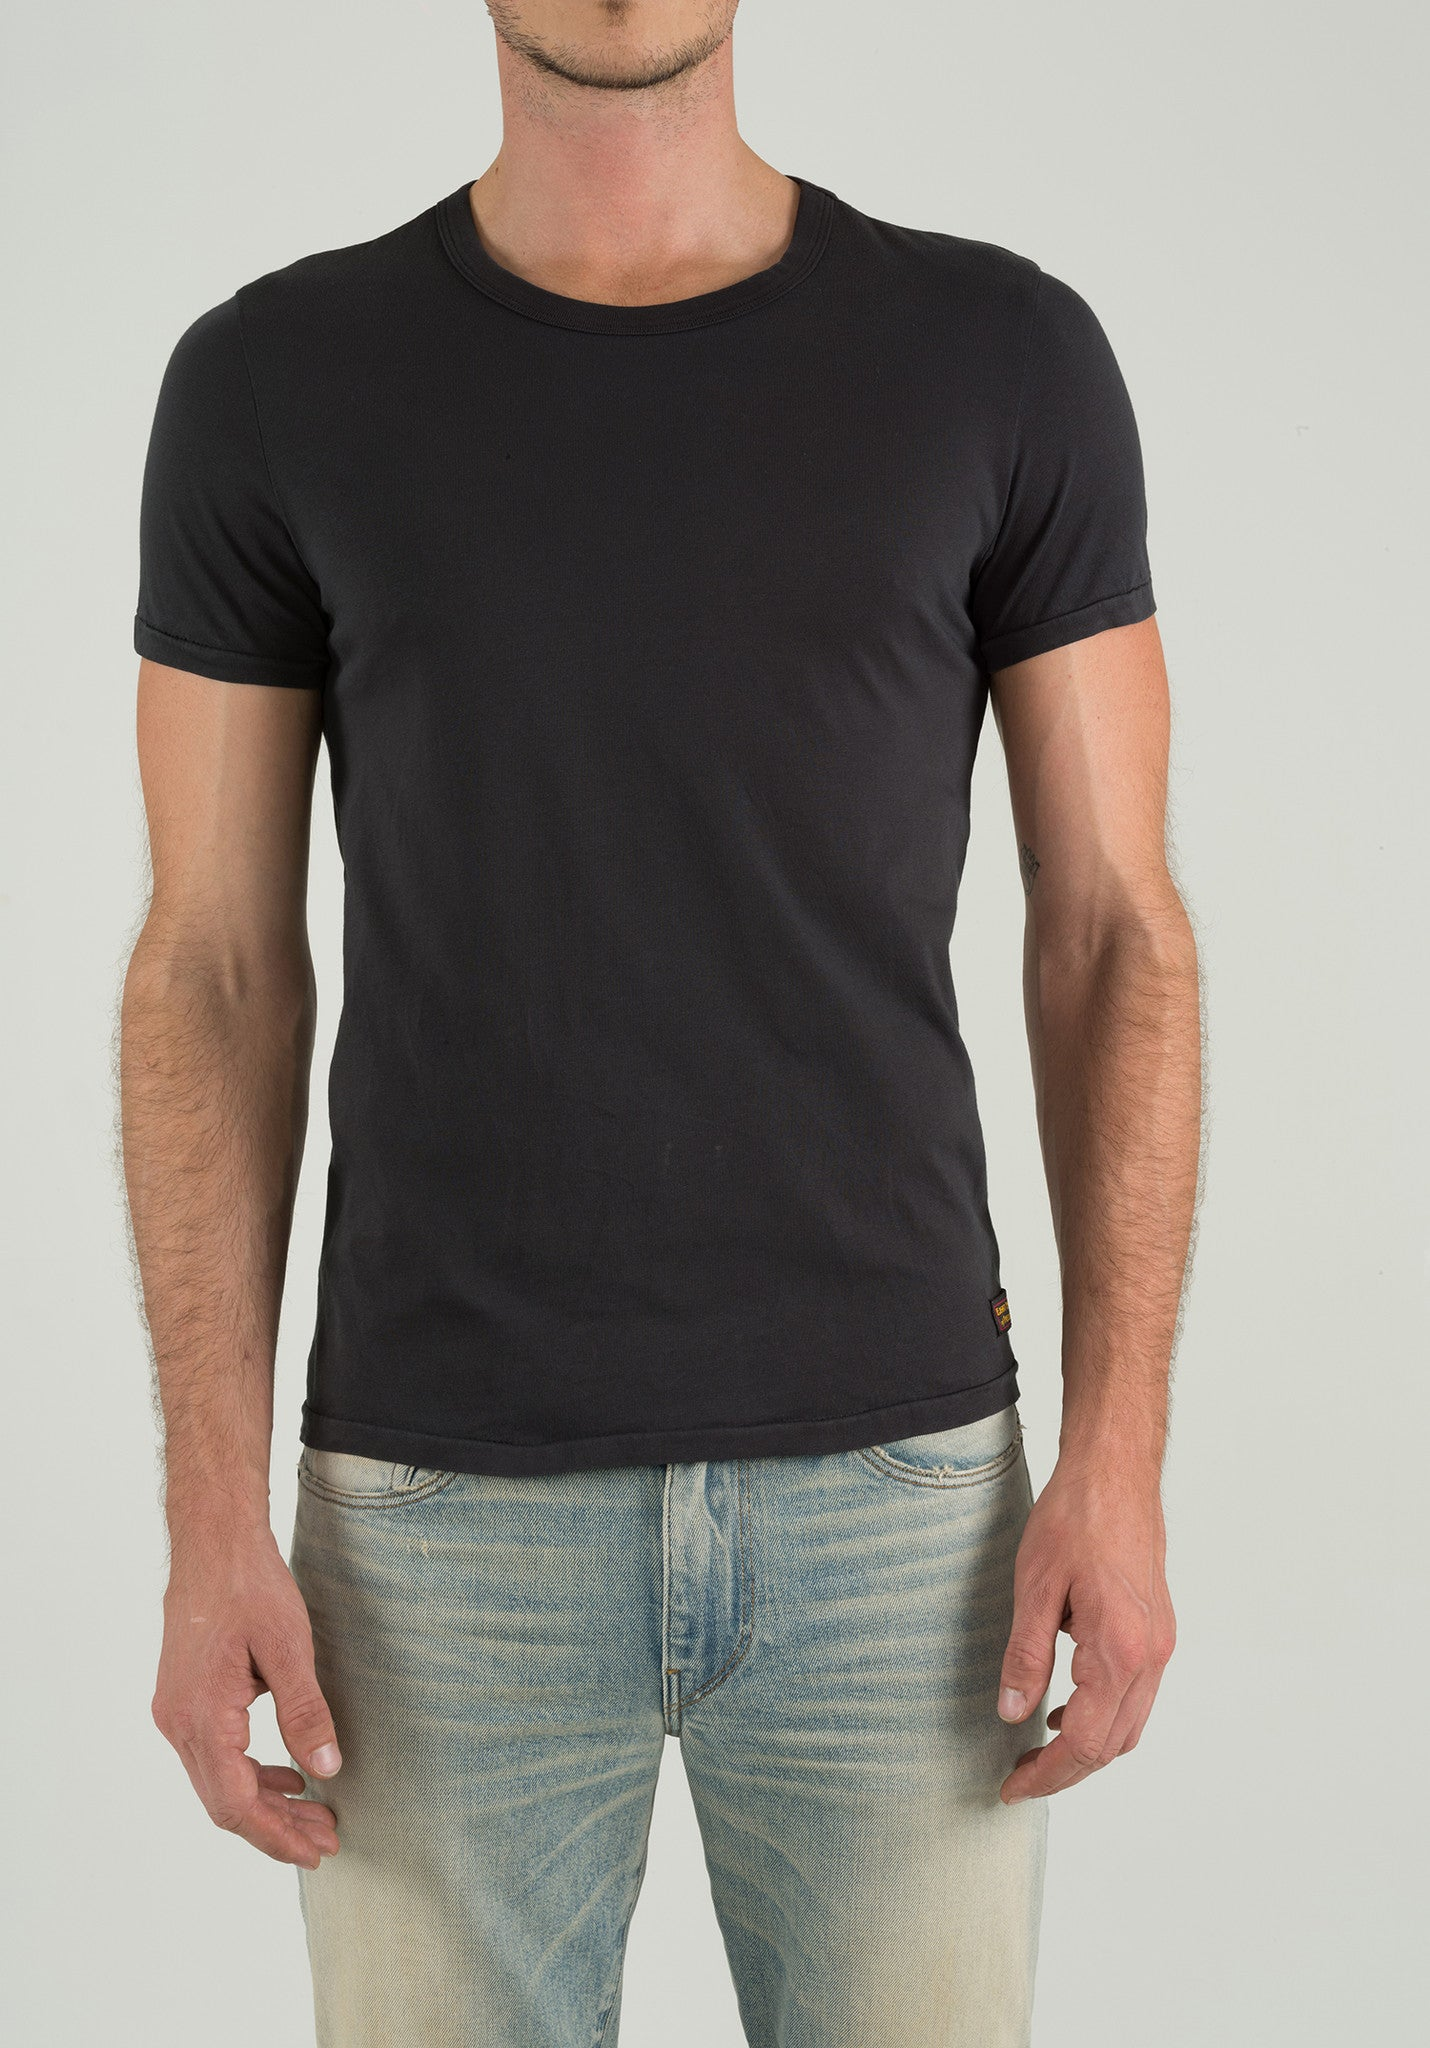 Crew Neck Short Sleeve - Black